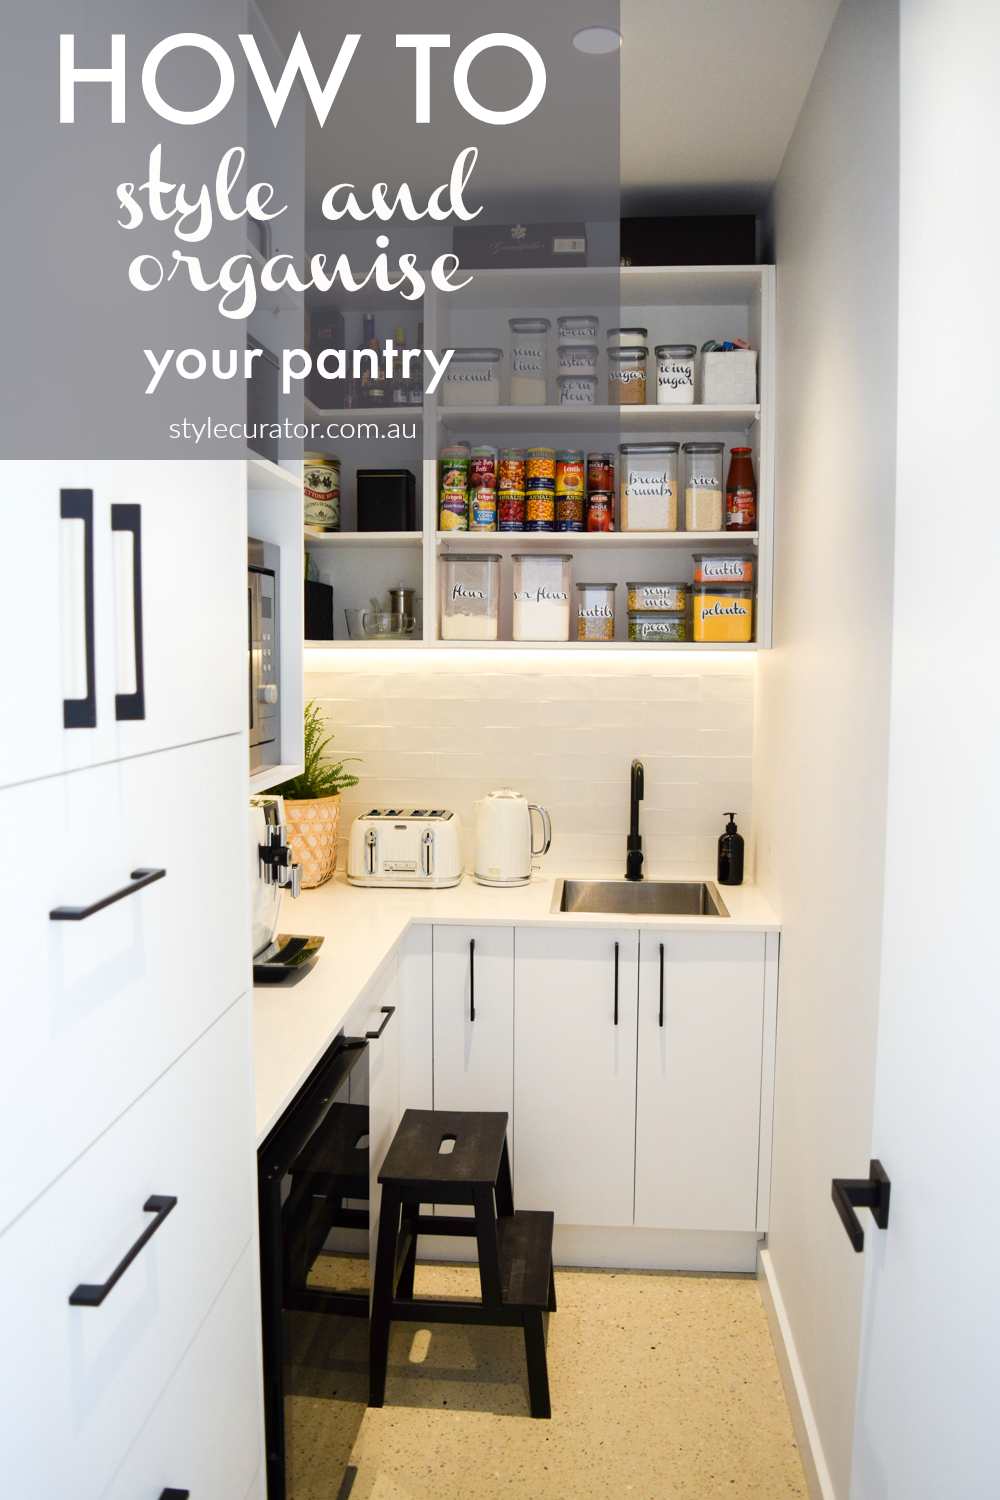 Style and organise your pantry